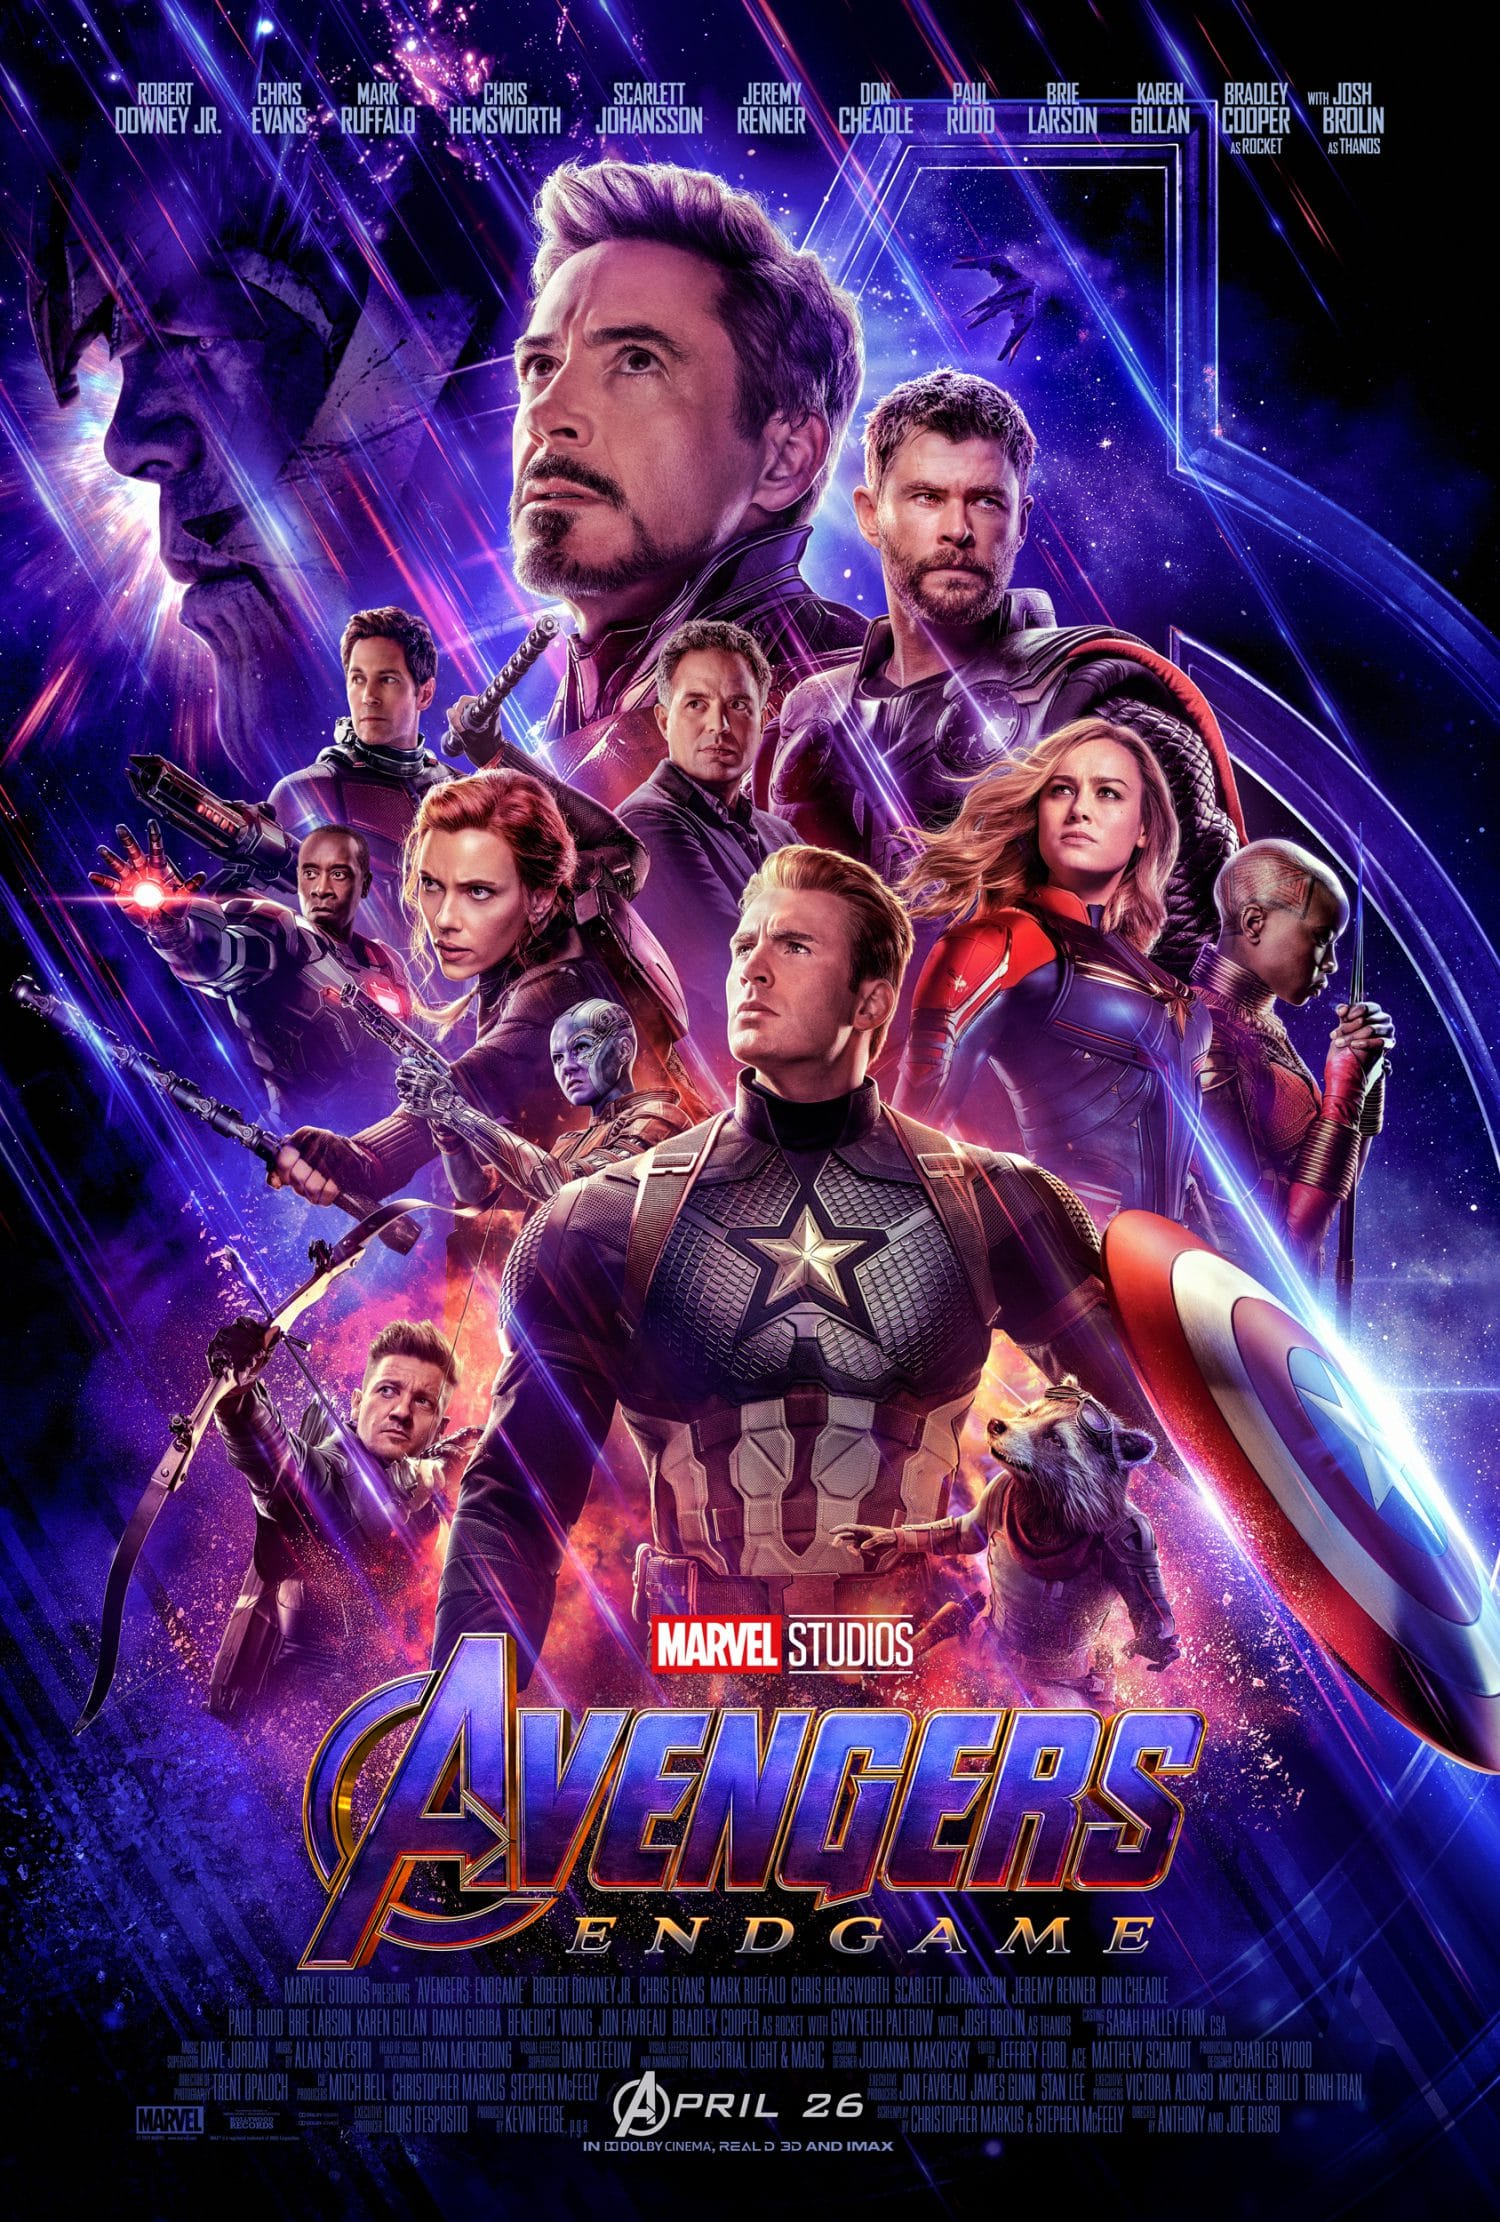 Watch the final trailer for Marvel's Avengers: Endgame.